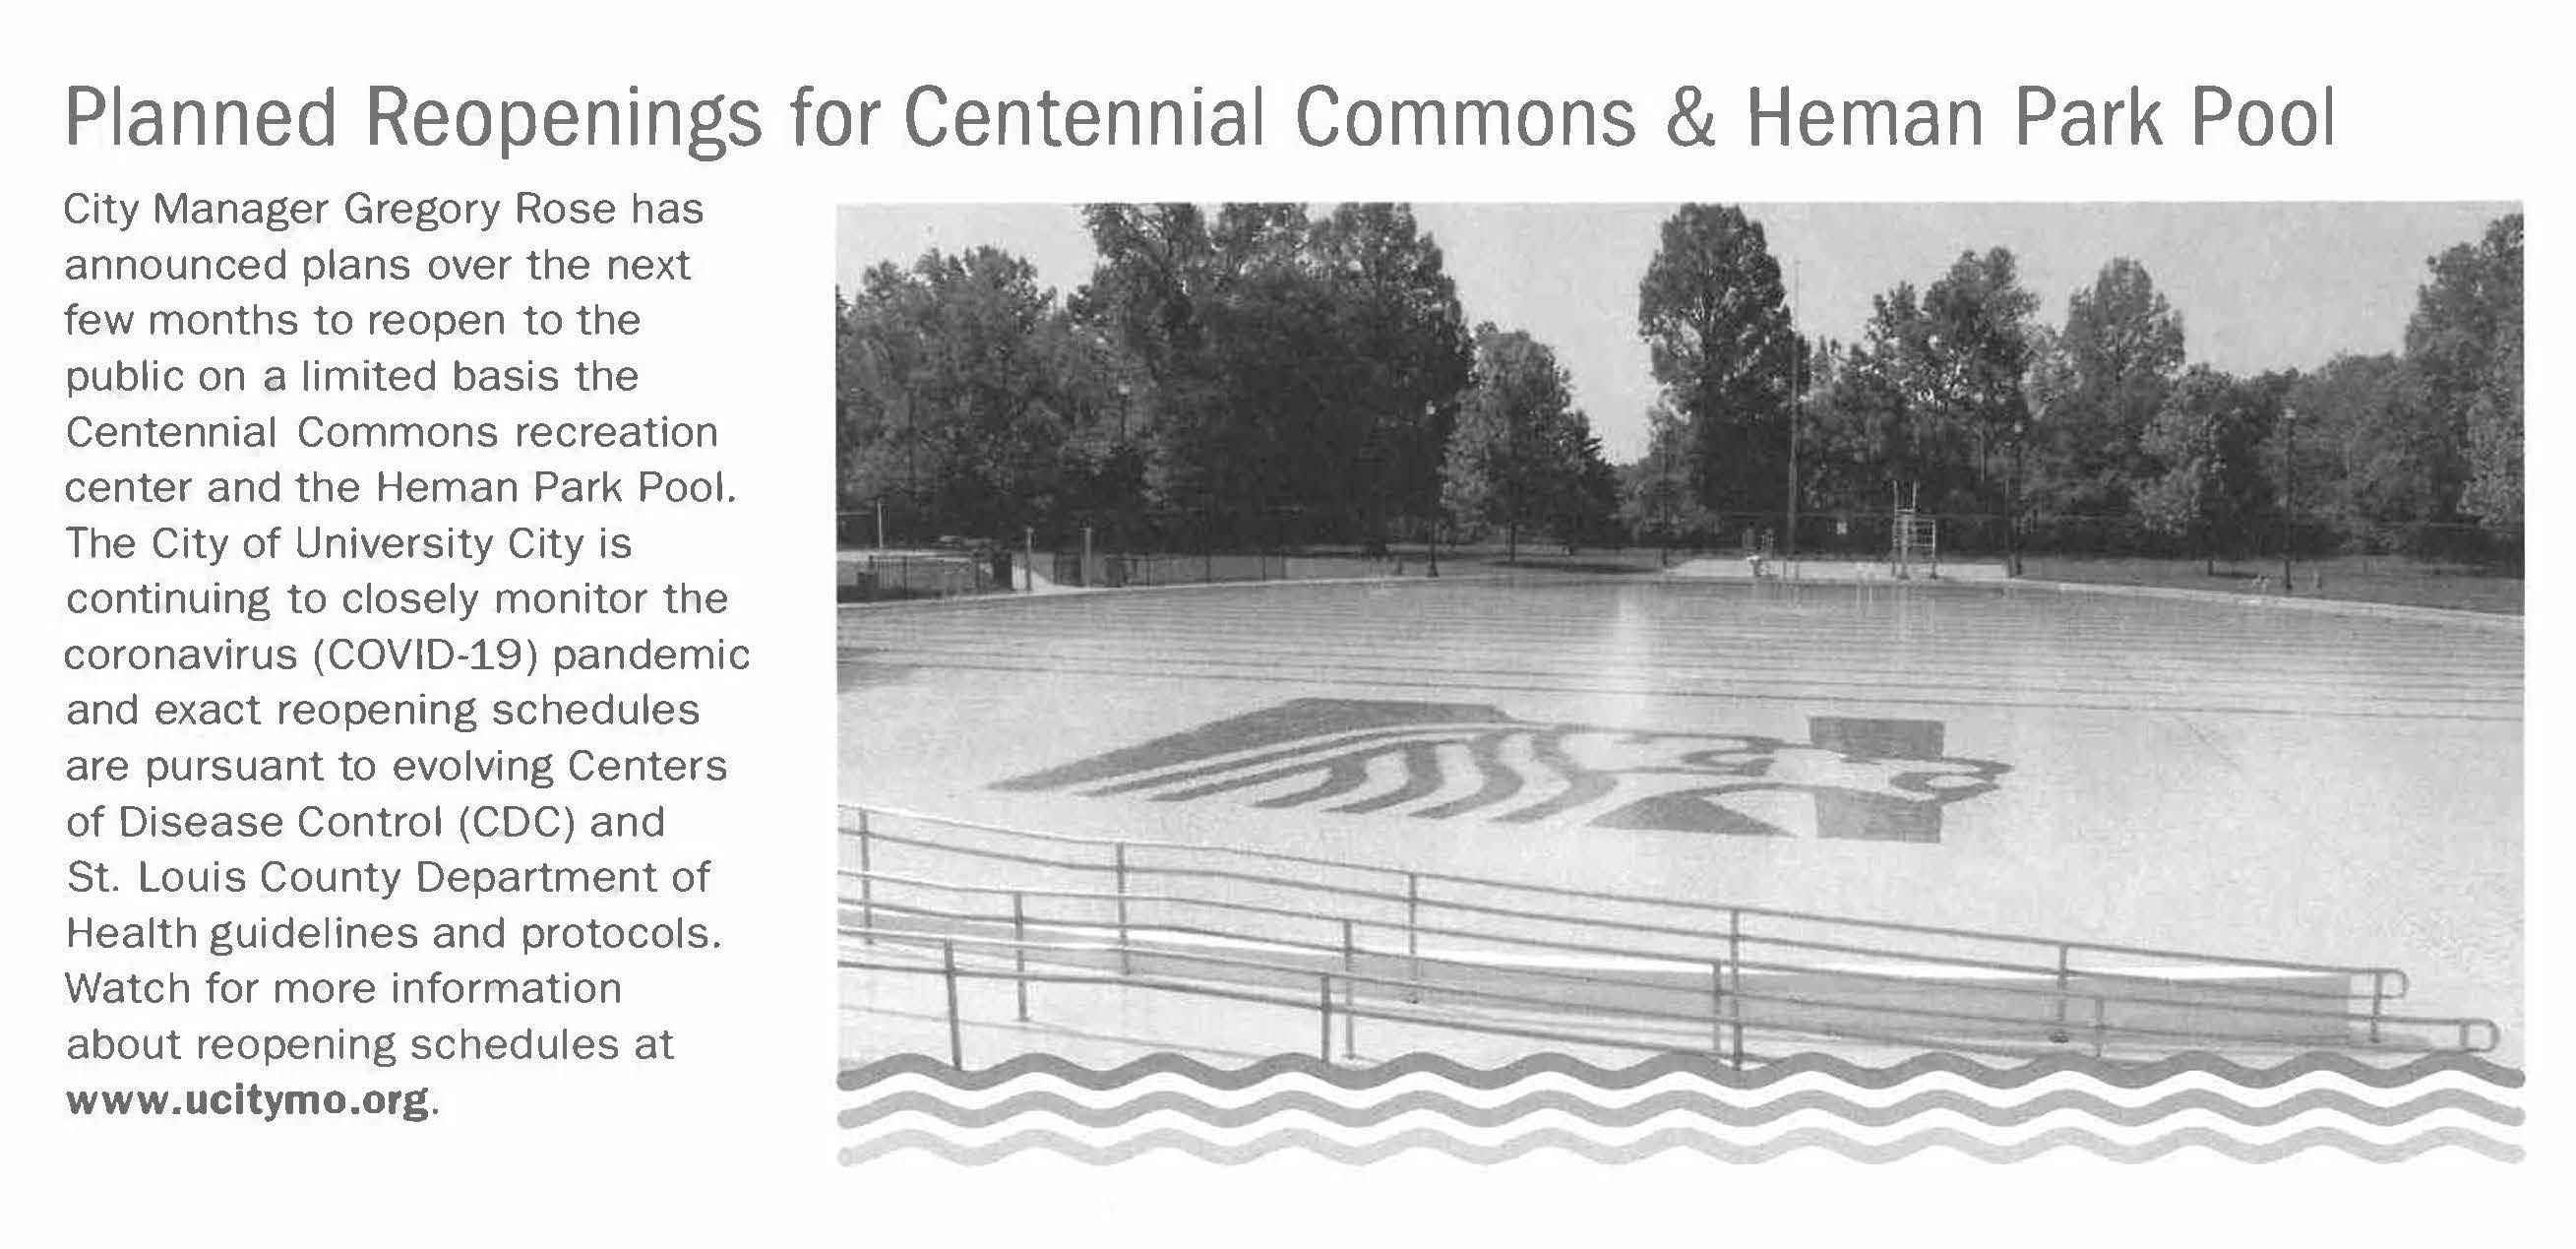 Centennial Commons 2021 Reopening